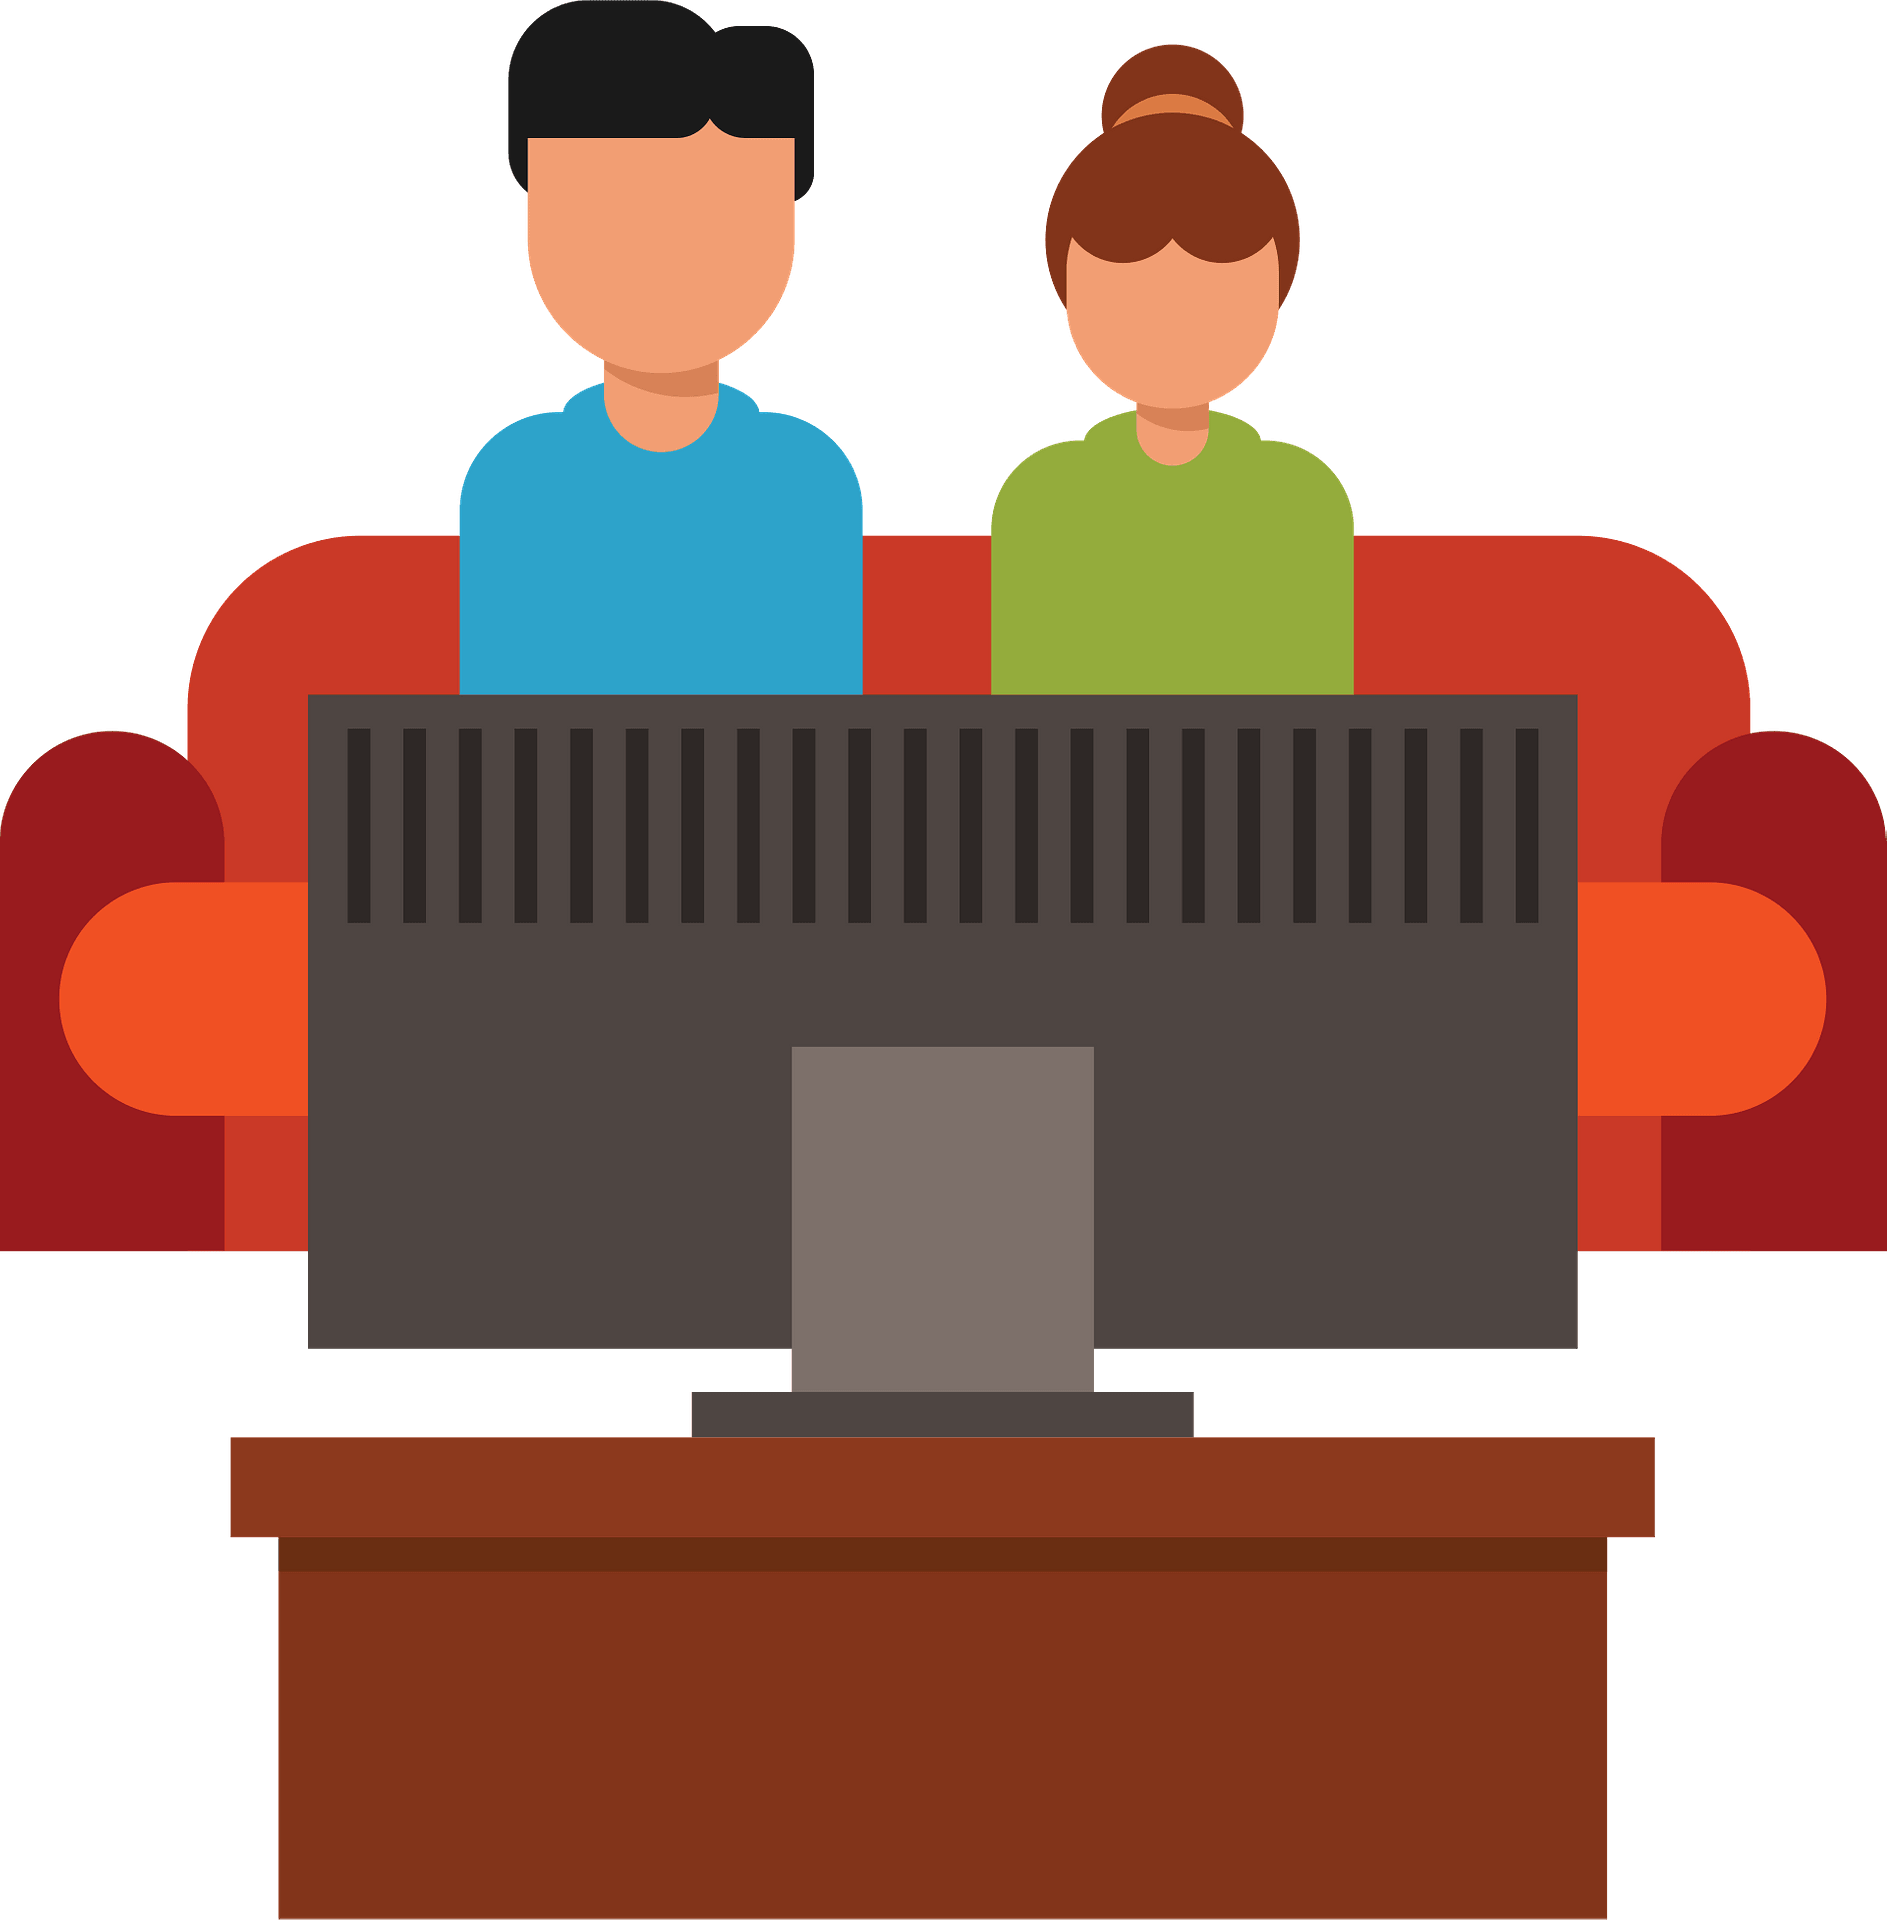 Man And Woman Watching Tv Clipart Free Download Transparent Png Creazilla Browse this featured selection from the web for use in websites, blogs, social media and your other products. man and woman watching tv clipart free